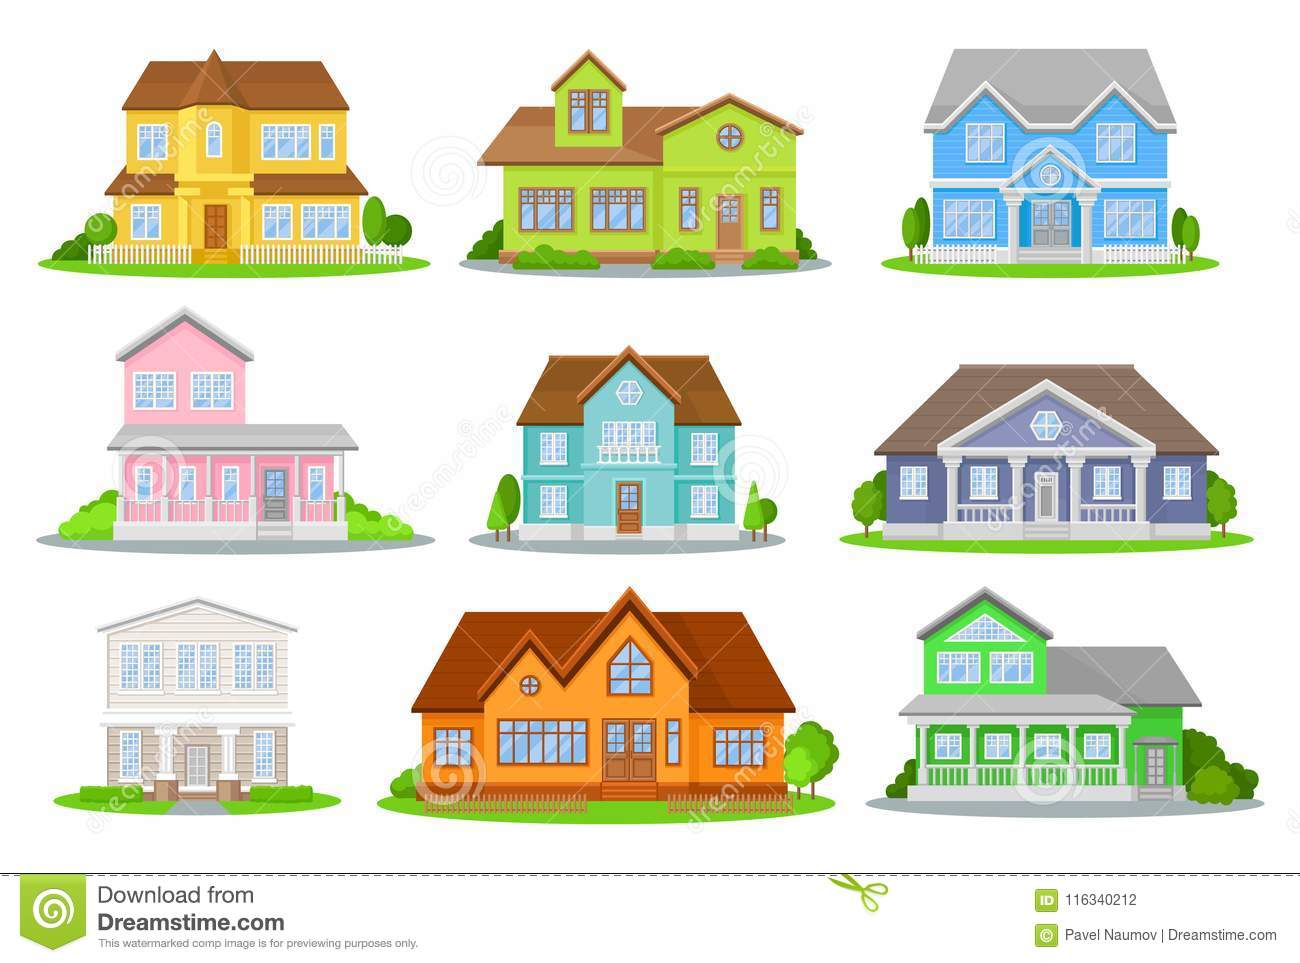 Download Flat Vector Set Of Colorful Houses With Green Meadow, Bushes And Trees. Cozy Residential Cottages. Traditional Stock Vector - Illustration of neighborhood, nature: 116340212